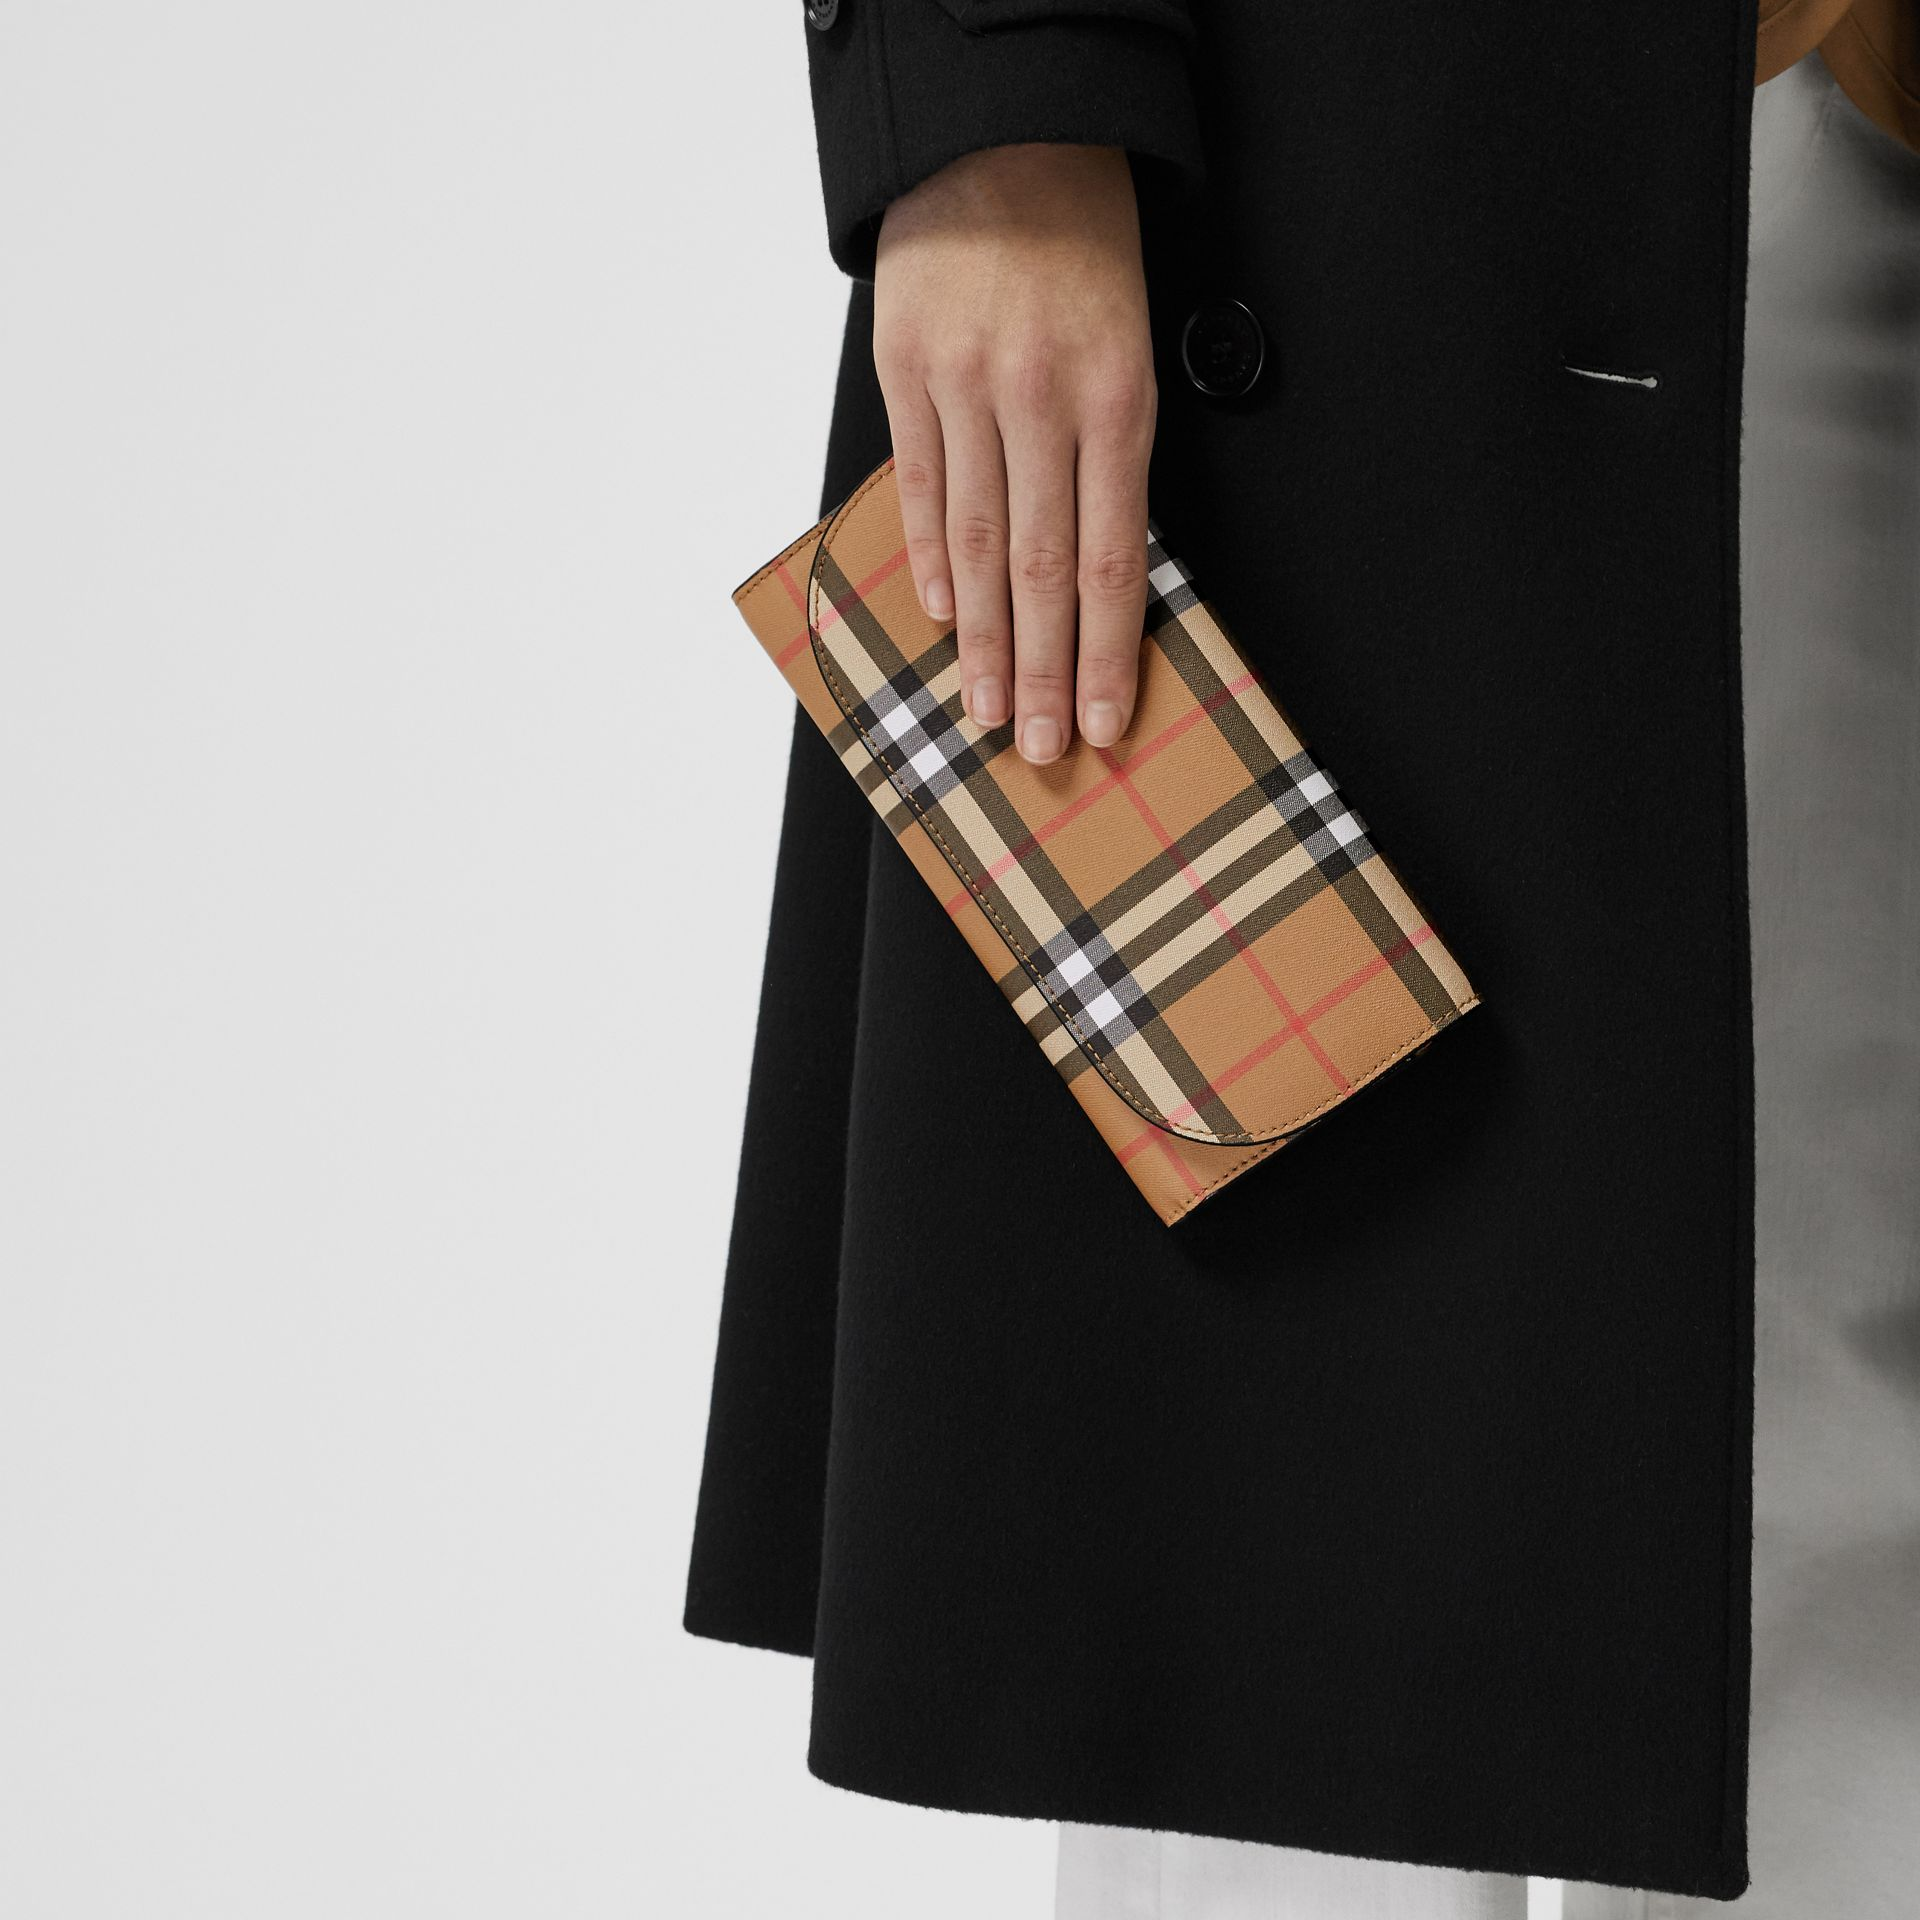 Portefeuille en cuir à motif Vintage check avec sangle amovible (Noir) - Femme | Burberry Canada - photo de la galerie 2